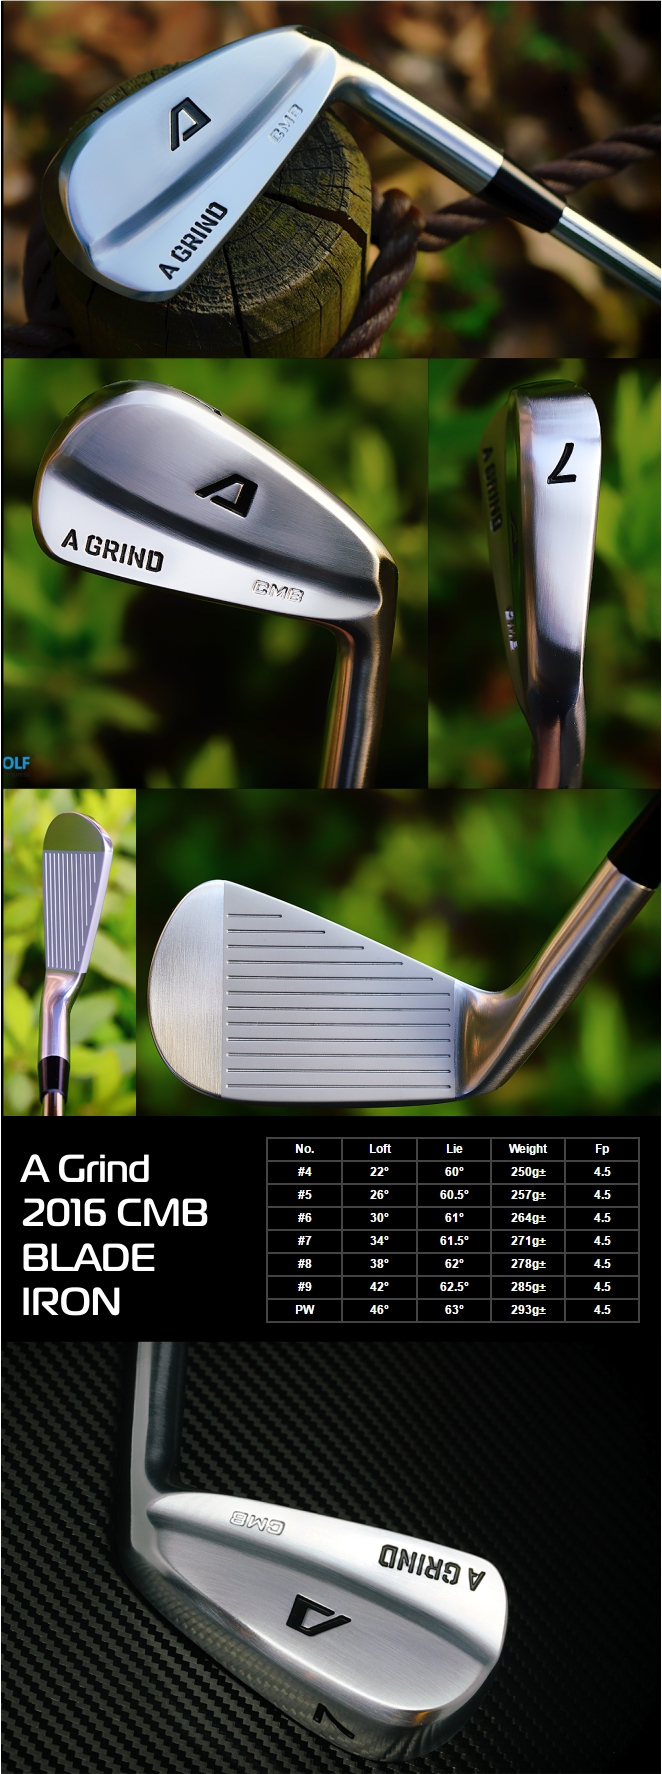 A-Grind 2016 CMB Blade Iron